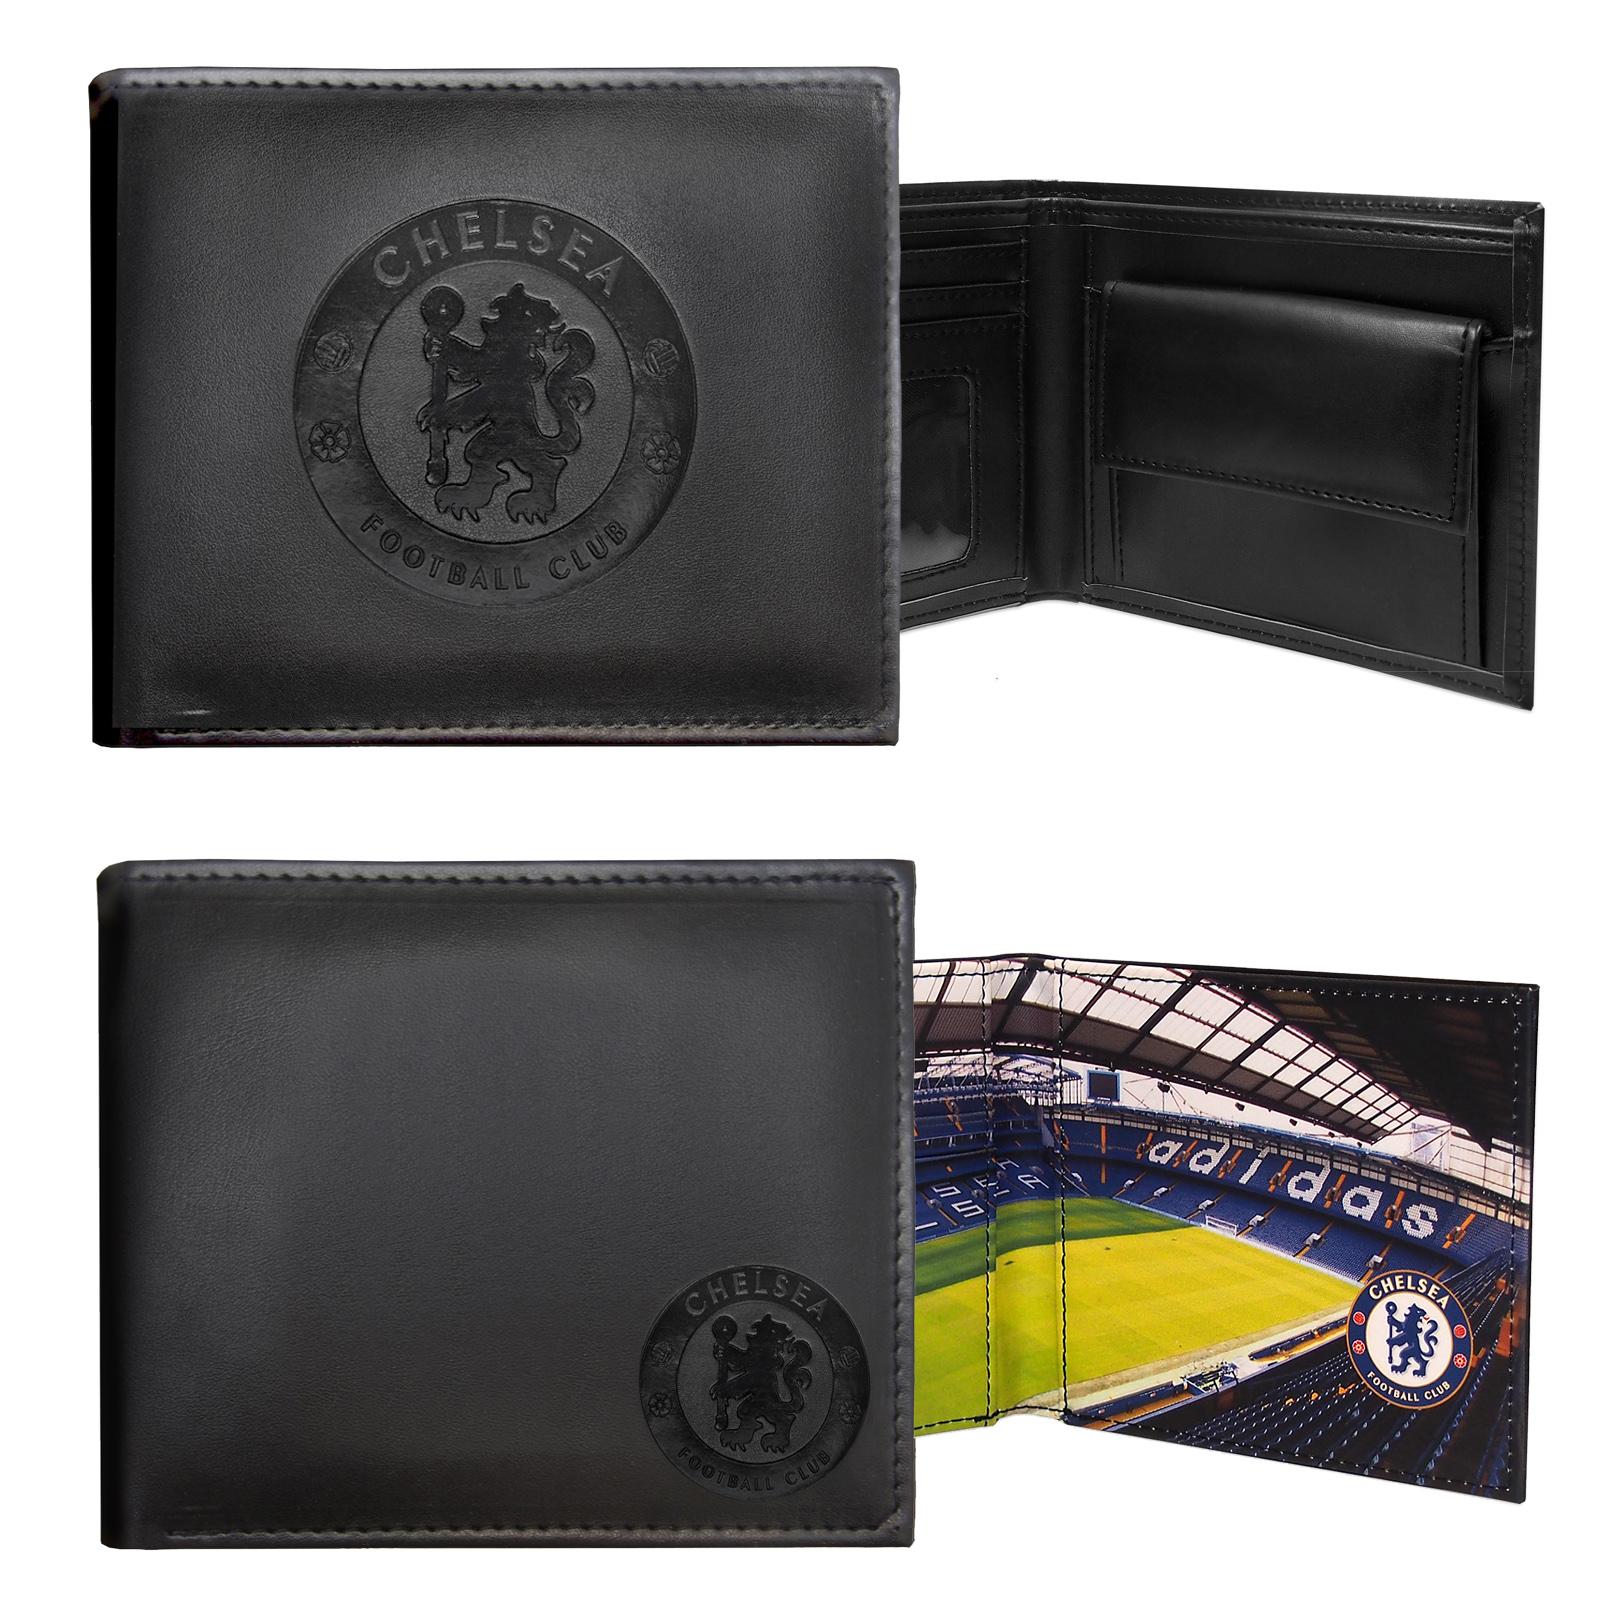 Chelsea-FC-Official-Football-Gift-Embossed-Crest-Wallet-Black miniatura 5